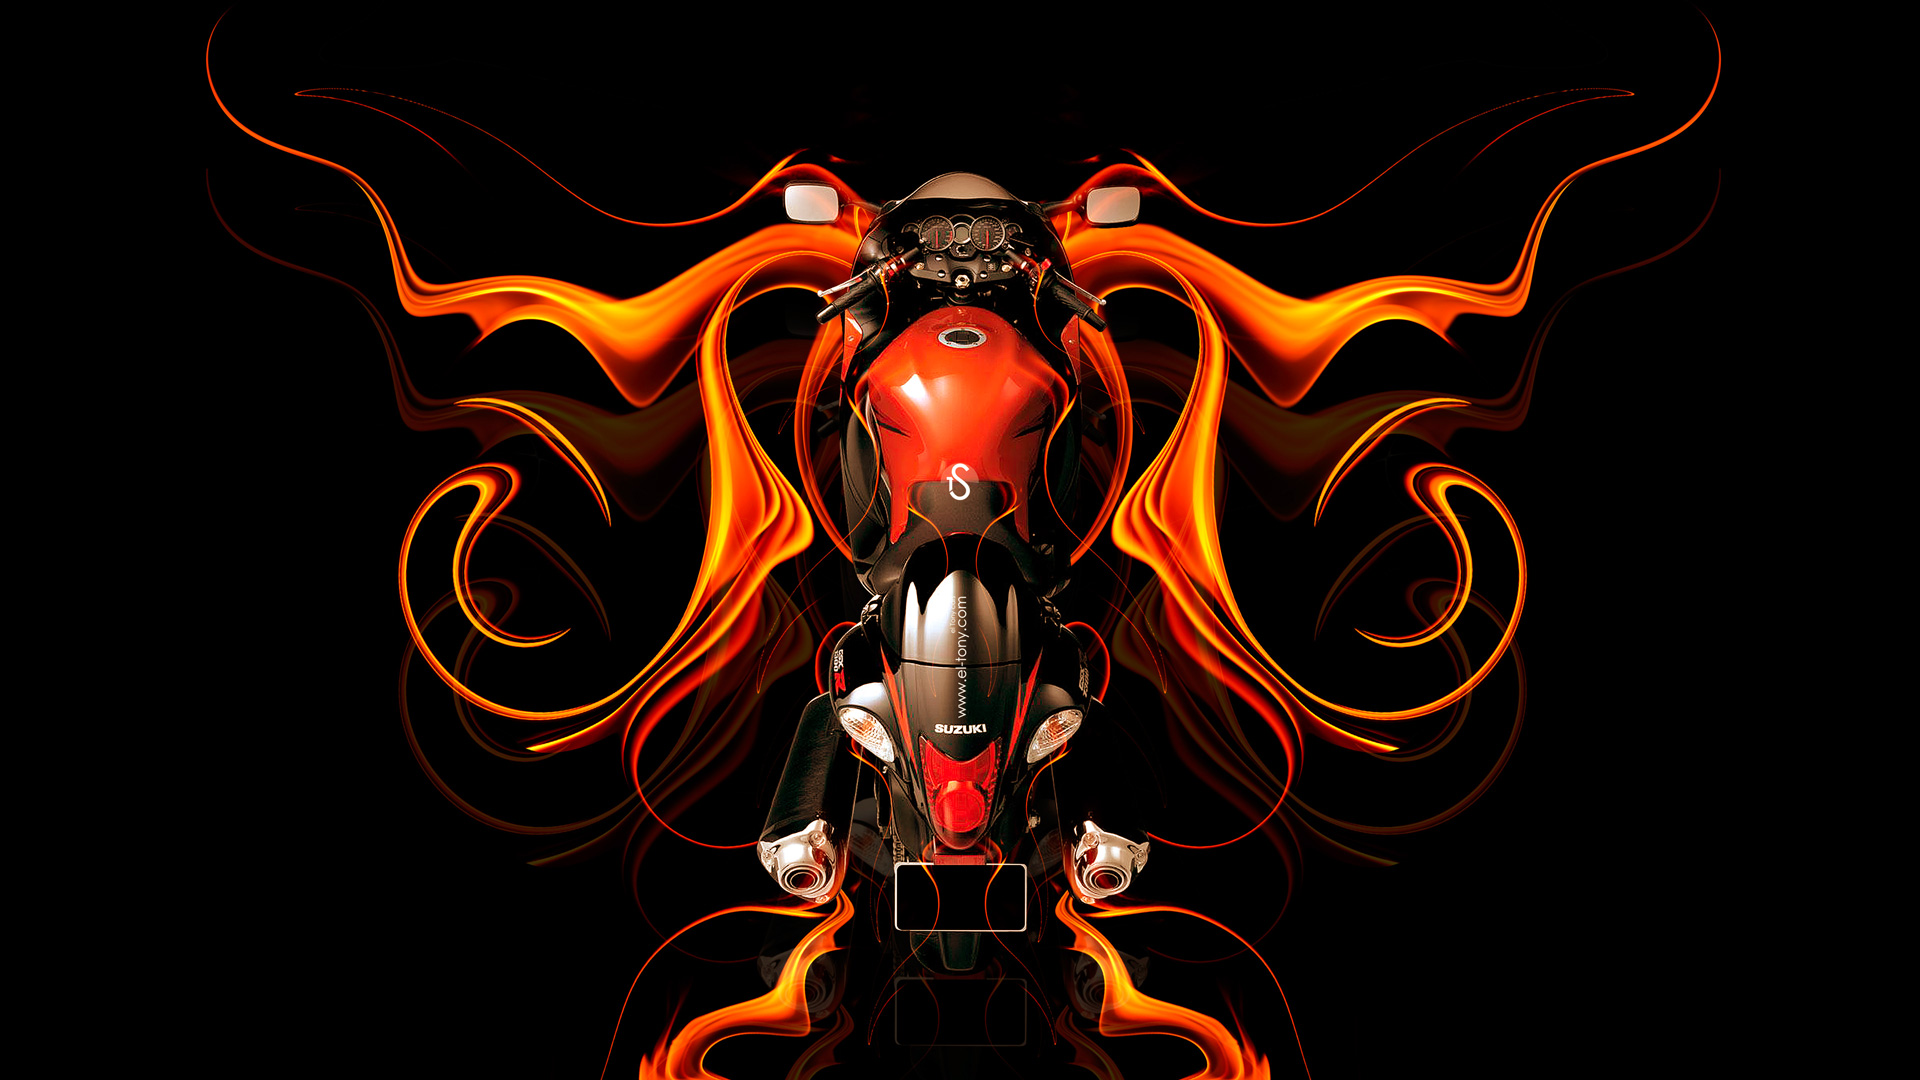 Lovely Moto Suzuki Hayabusa BackUp Super Fire Abstract Bike